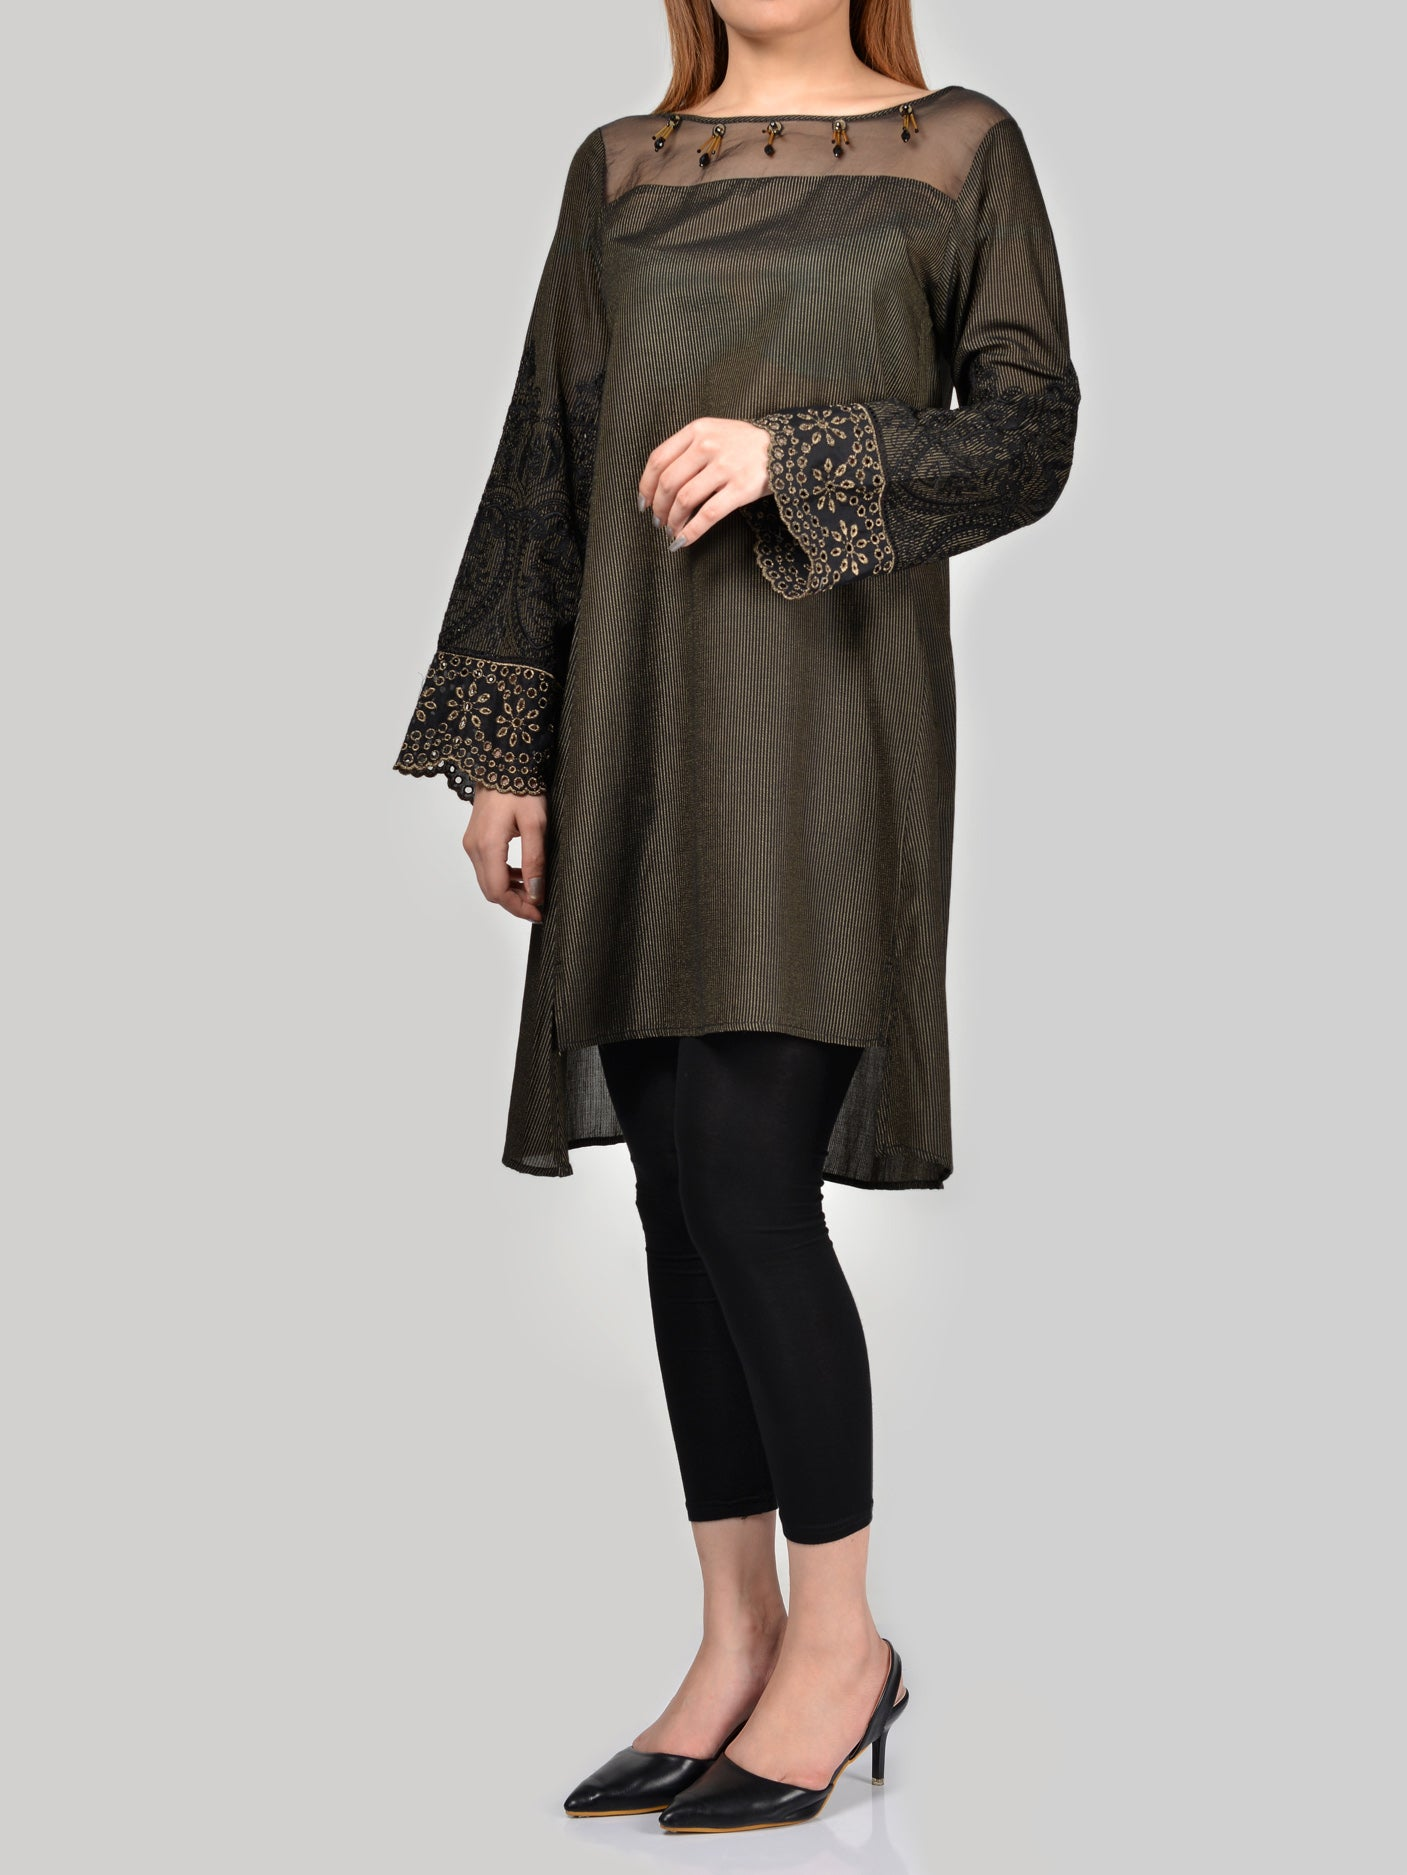 Limelight Embellished Lawn Shirt P0140 Online in Pakistan | Limelight.pk